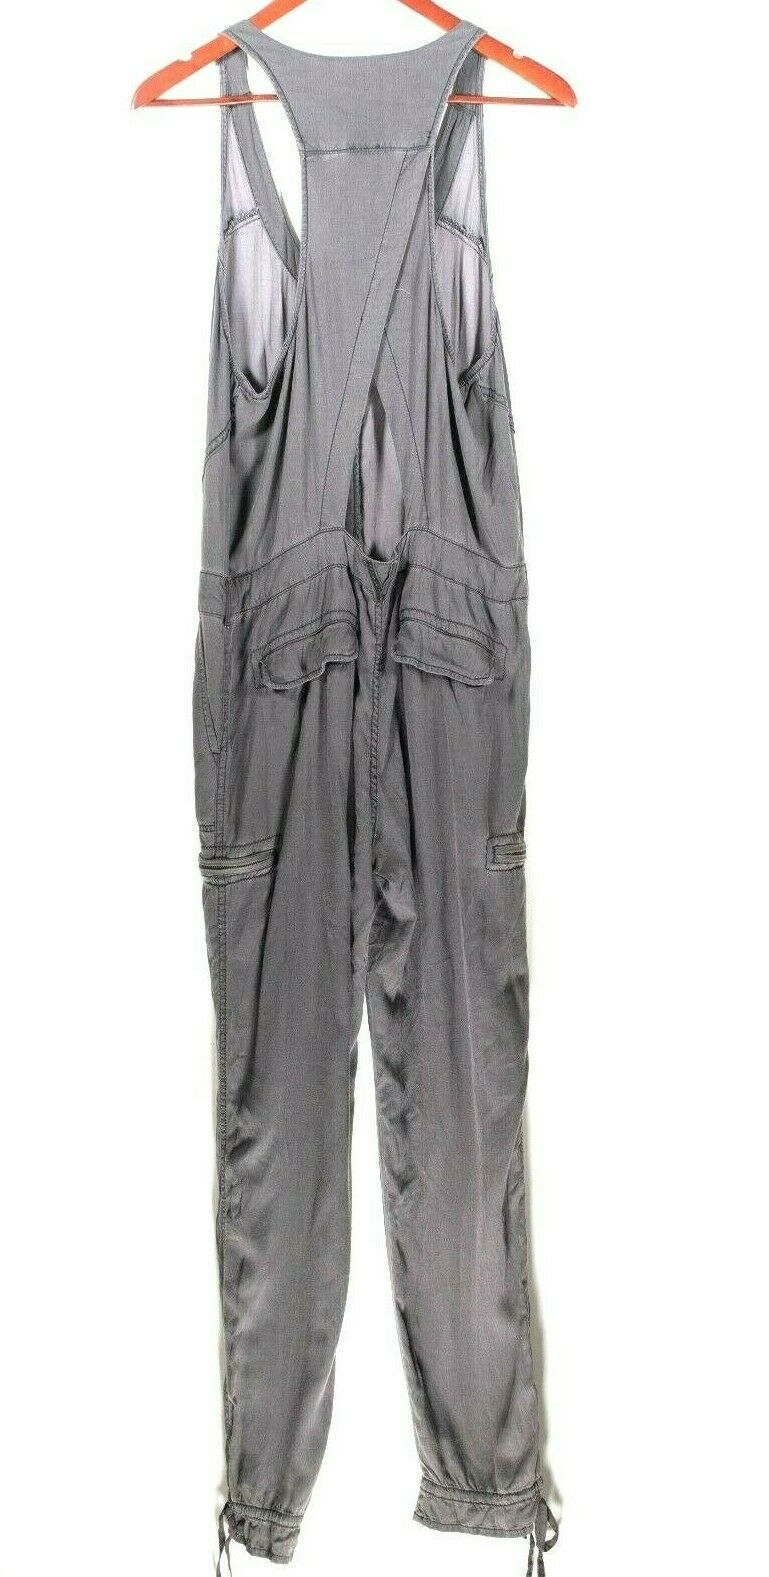 Free People Womens Small Gray Jumpsuit Racerback Cargo Pocket Drawstring Pants